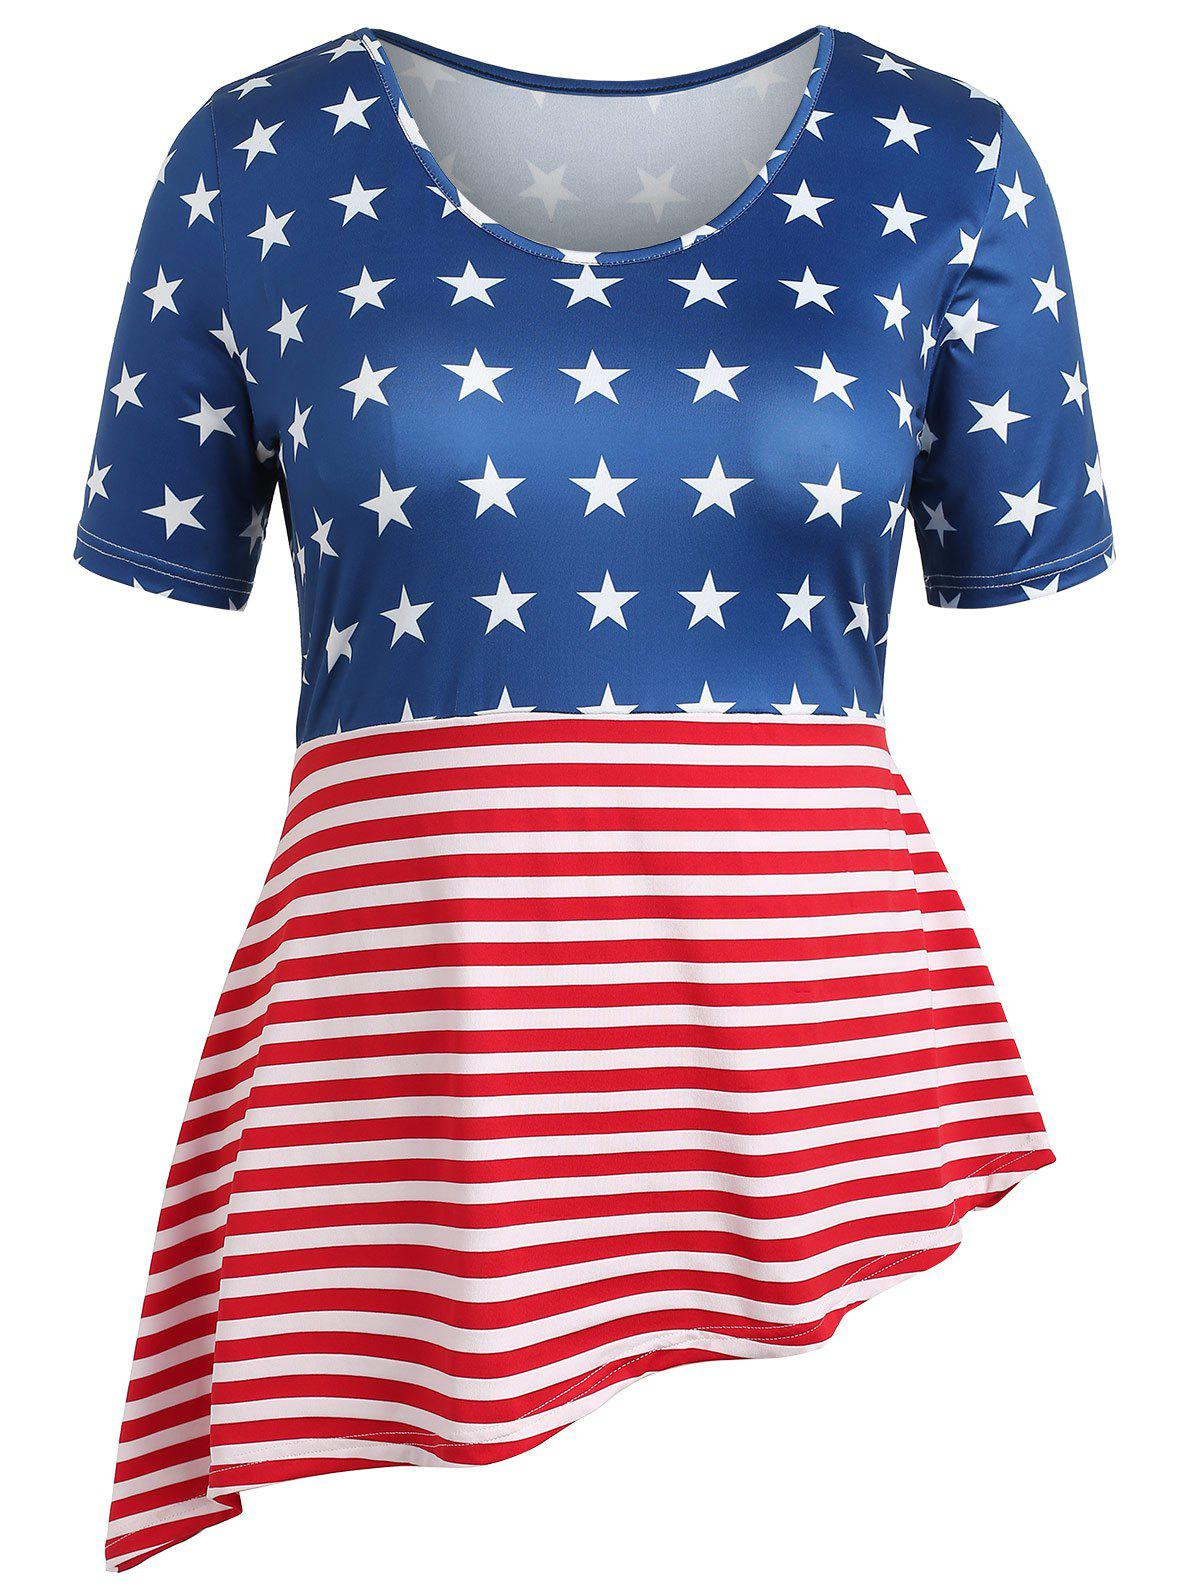 9e410d272e0 62% OFF   2019 Plus Size Patriotic American Flag Asymmetrical T ...